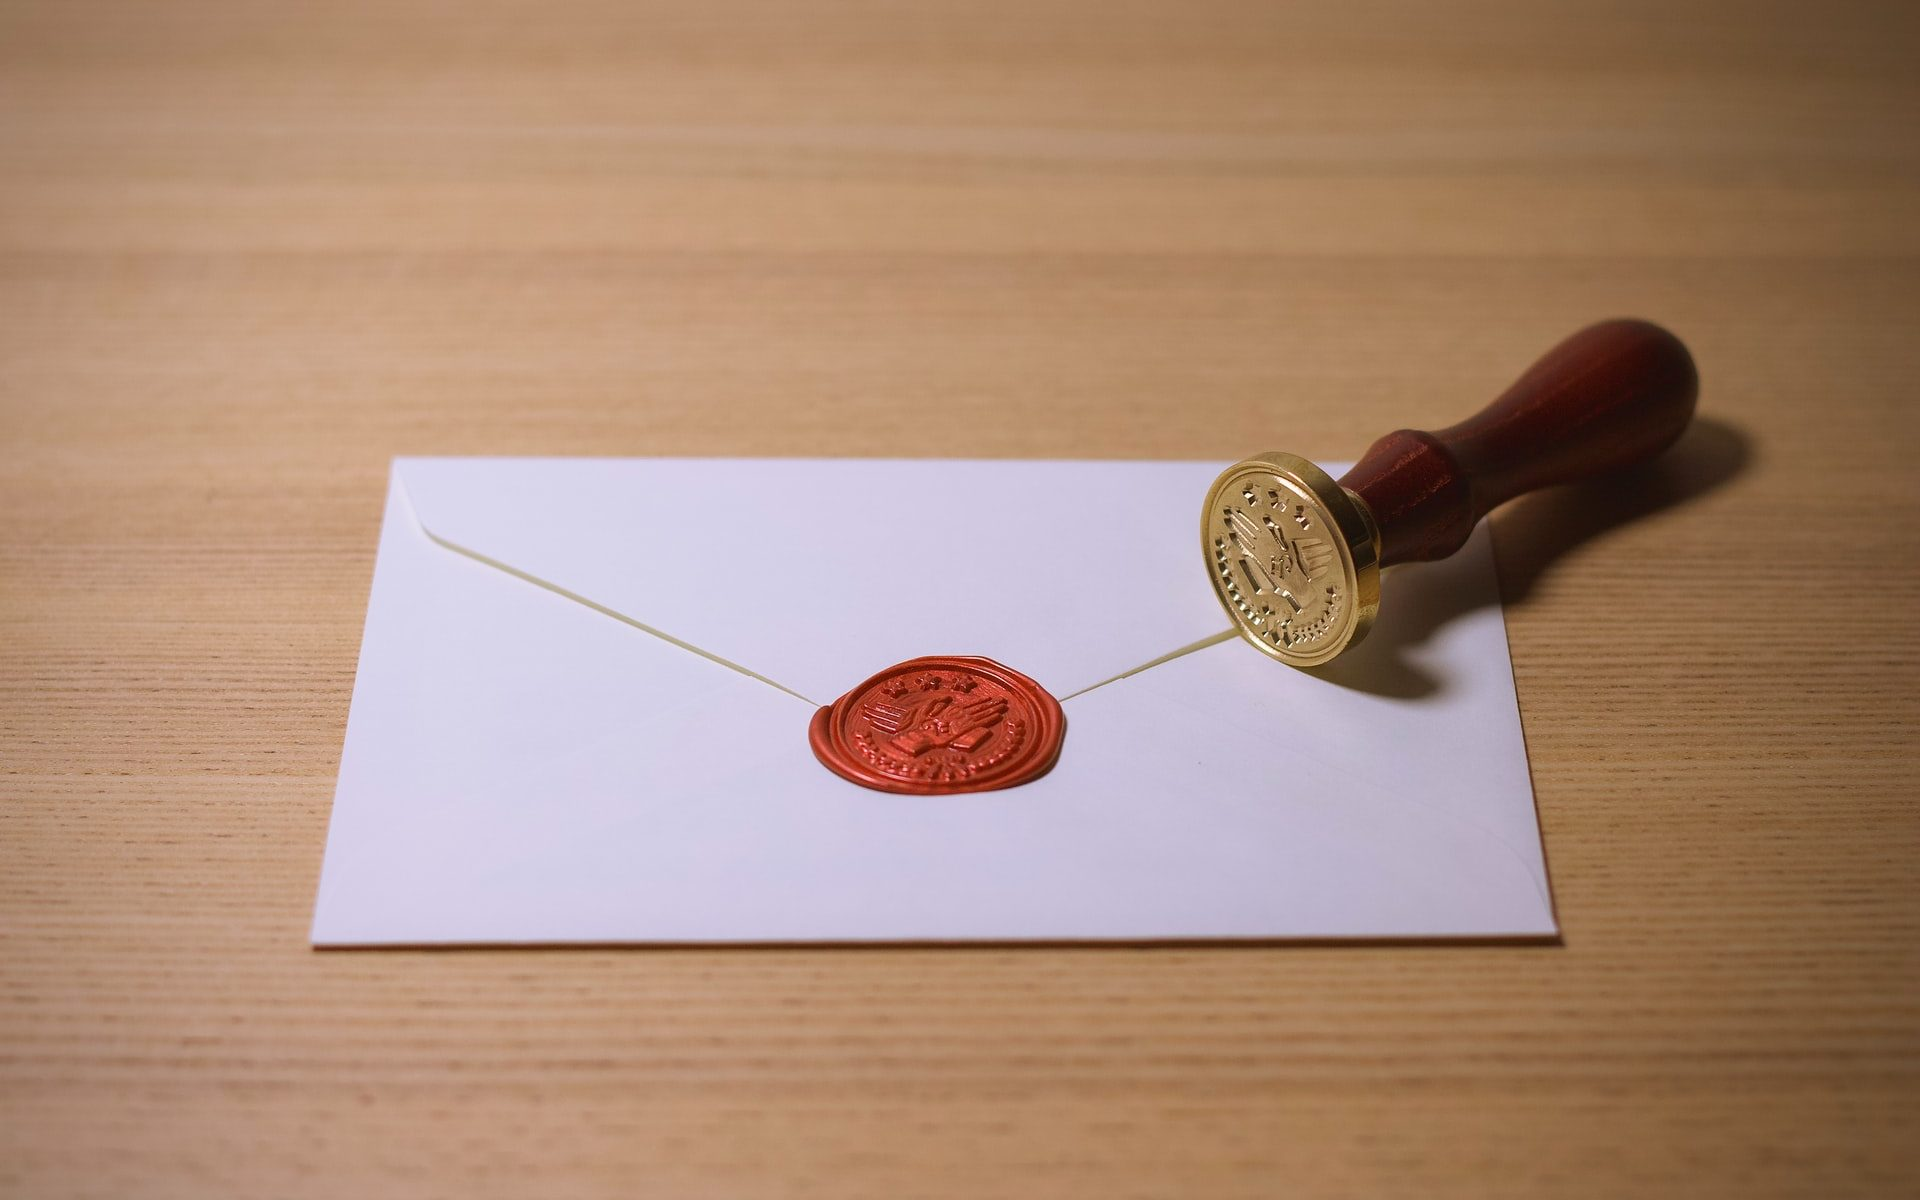 Is Sealing Wax Bad For The Environment